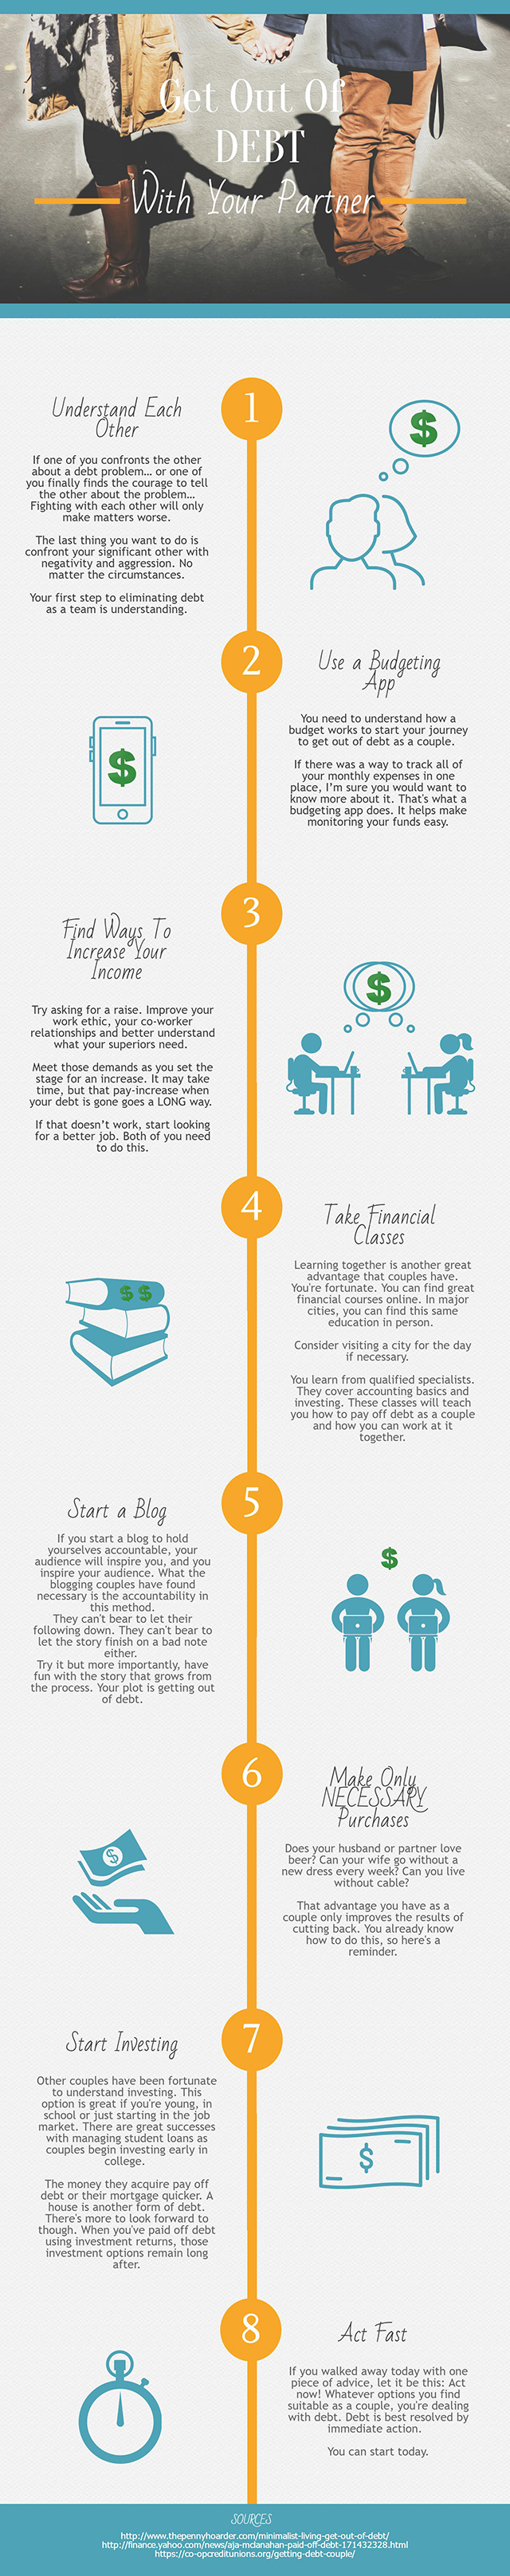 Get Out of Debt With Your Partner - 1Infographic